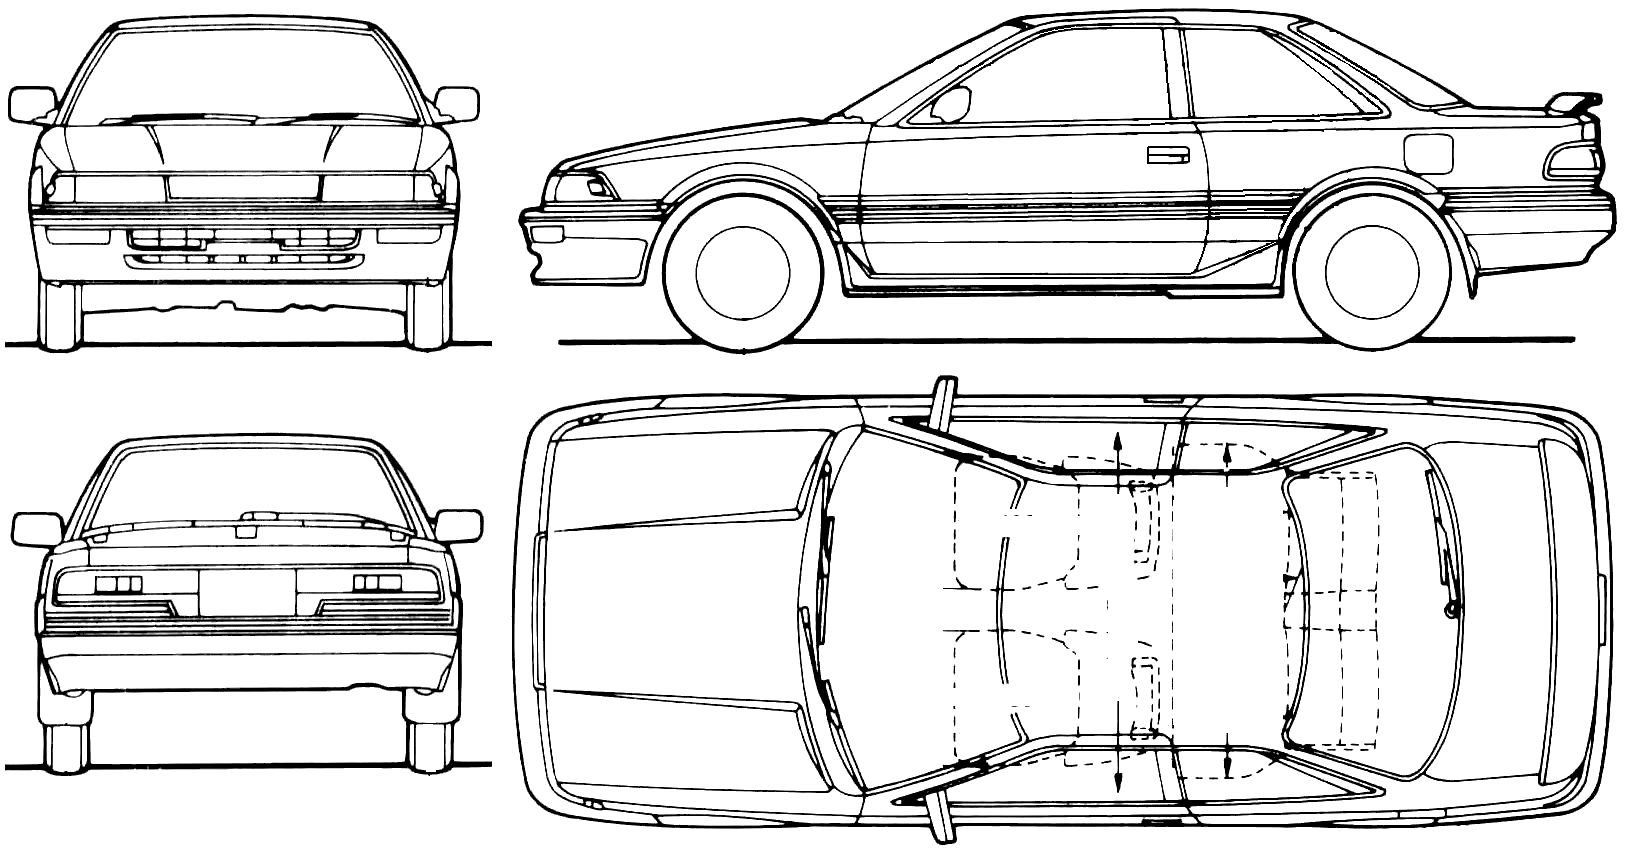 1990 toyota corolla levin coupe blueprints free outlines toyota corolla levin blueprints malvernweather Image collections